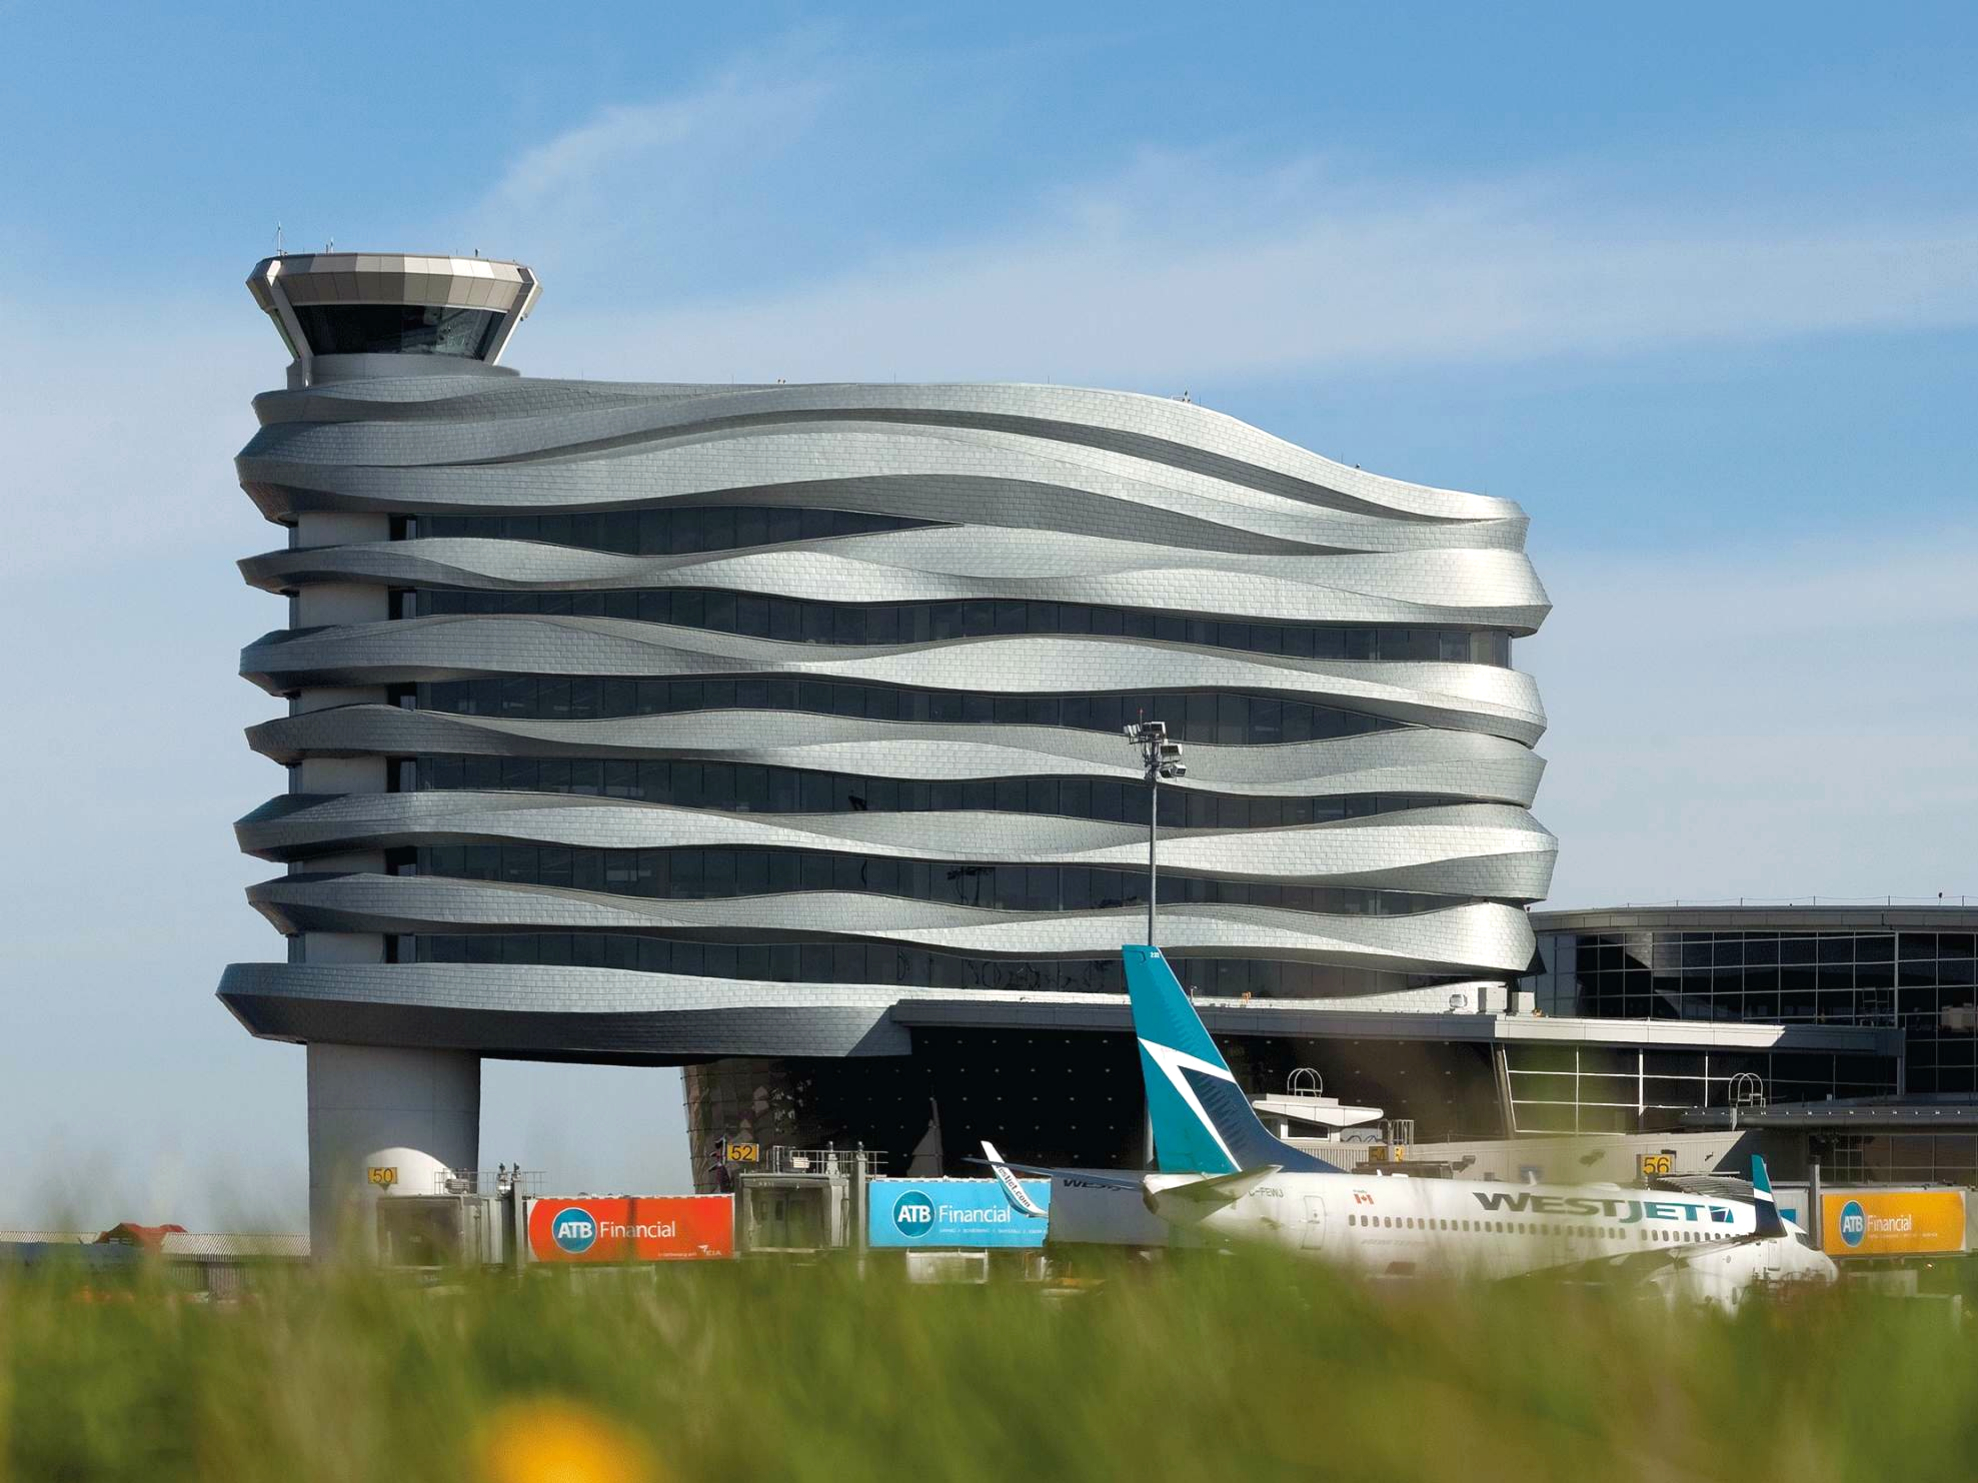 YEG AIR TRAFFIC CONTROL TOWER (CREDIT: DIALOG DESIGN)